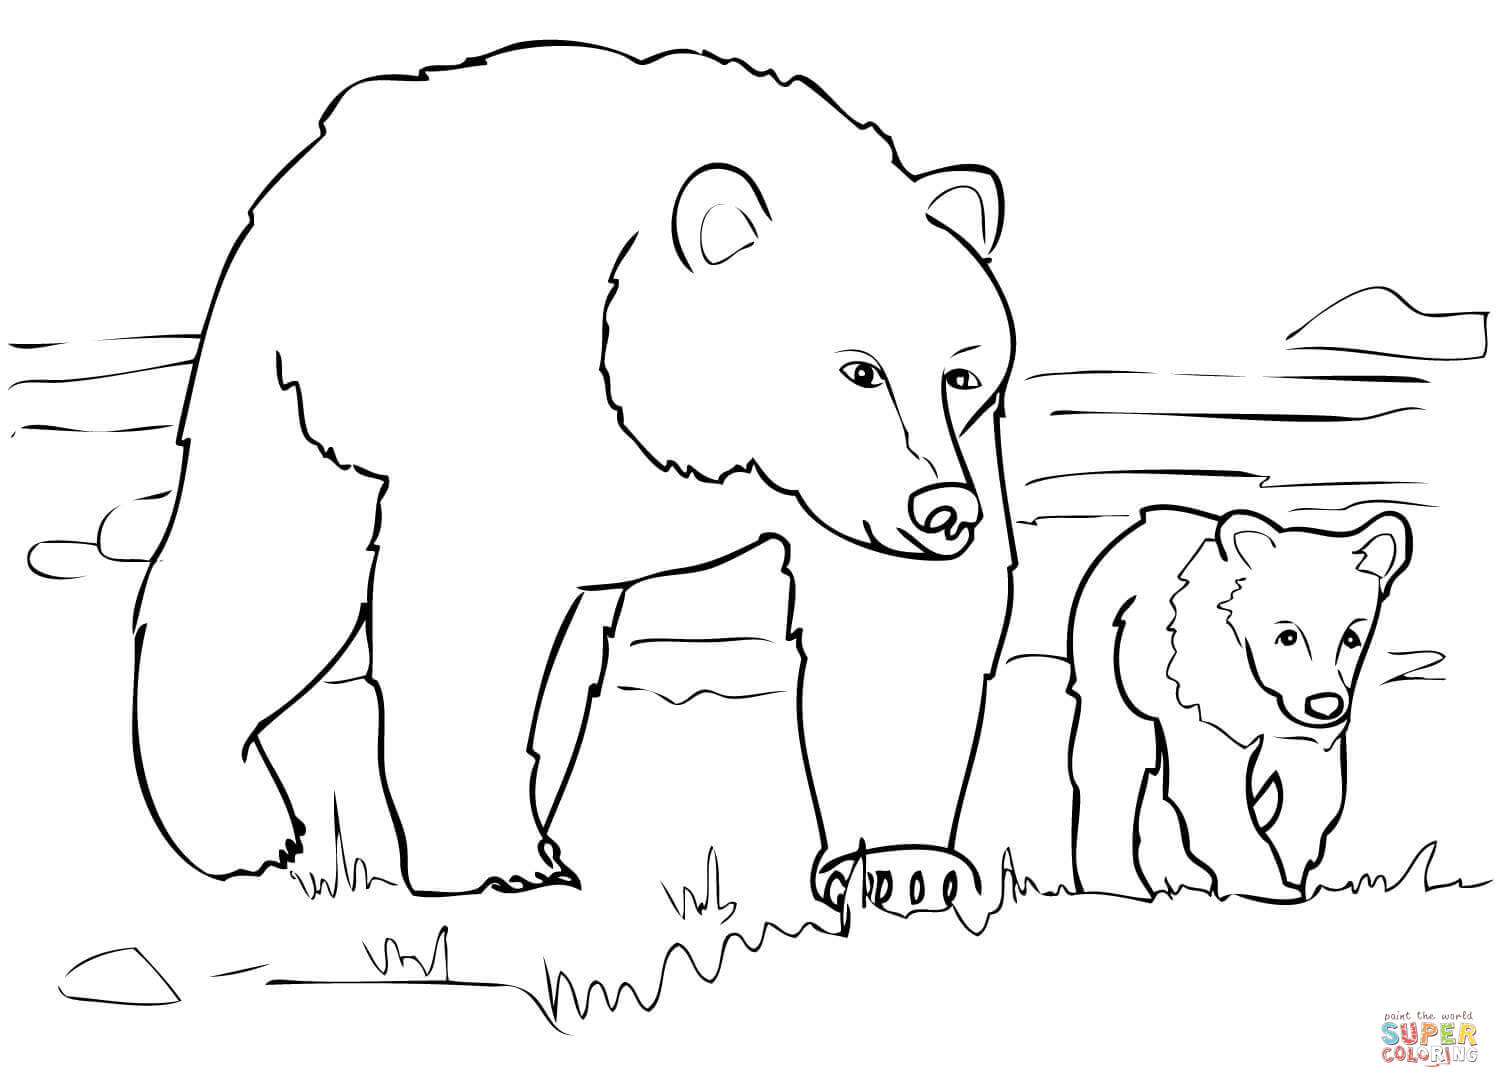 Grizzly Bear Coloring Pages For Kids  Grizzly Bear Family coloring page